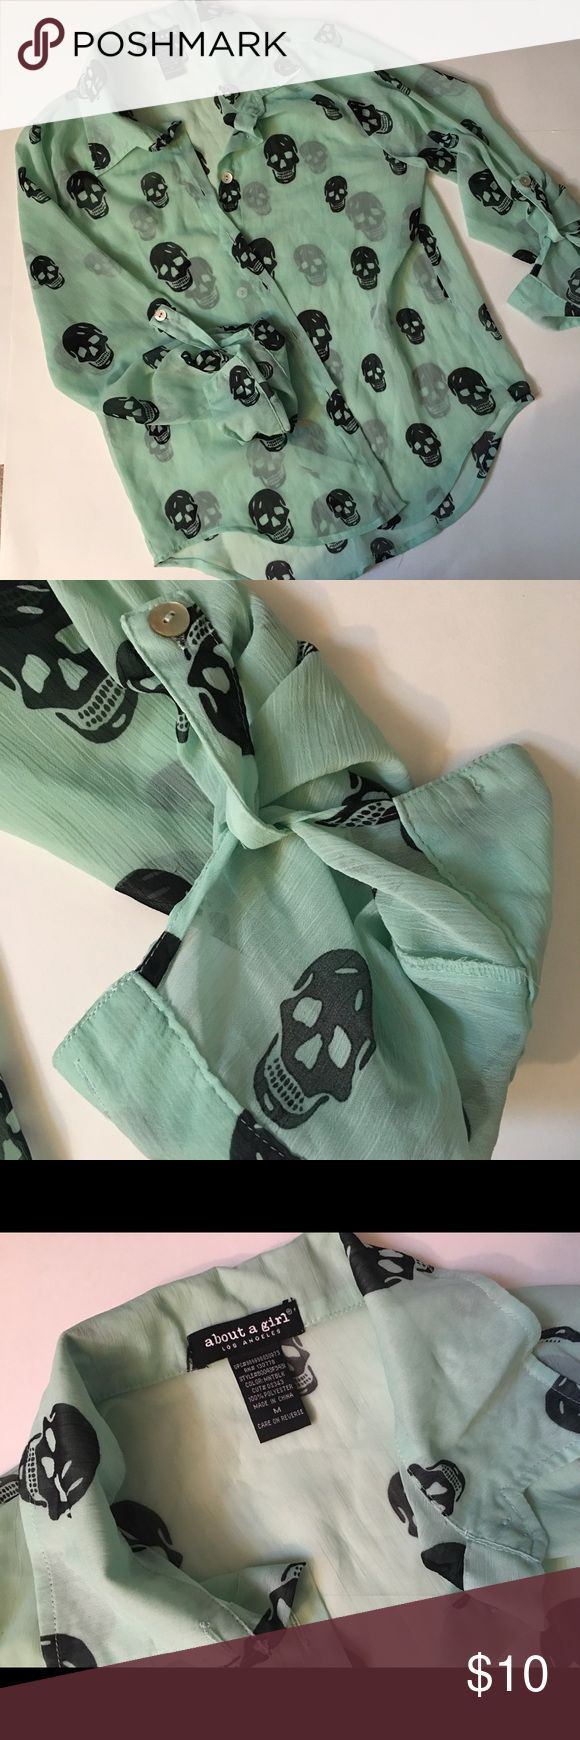 Sheer Mint blouse with Skulls About a Girl Los Angeles Sheer Blouse with Blue Skulls.  This airy blouse buttons up to 3/4 sleeve. All About a girl Los Angeles Tops Blouses